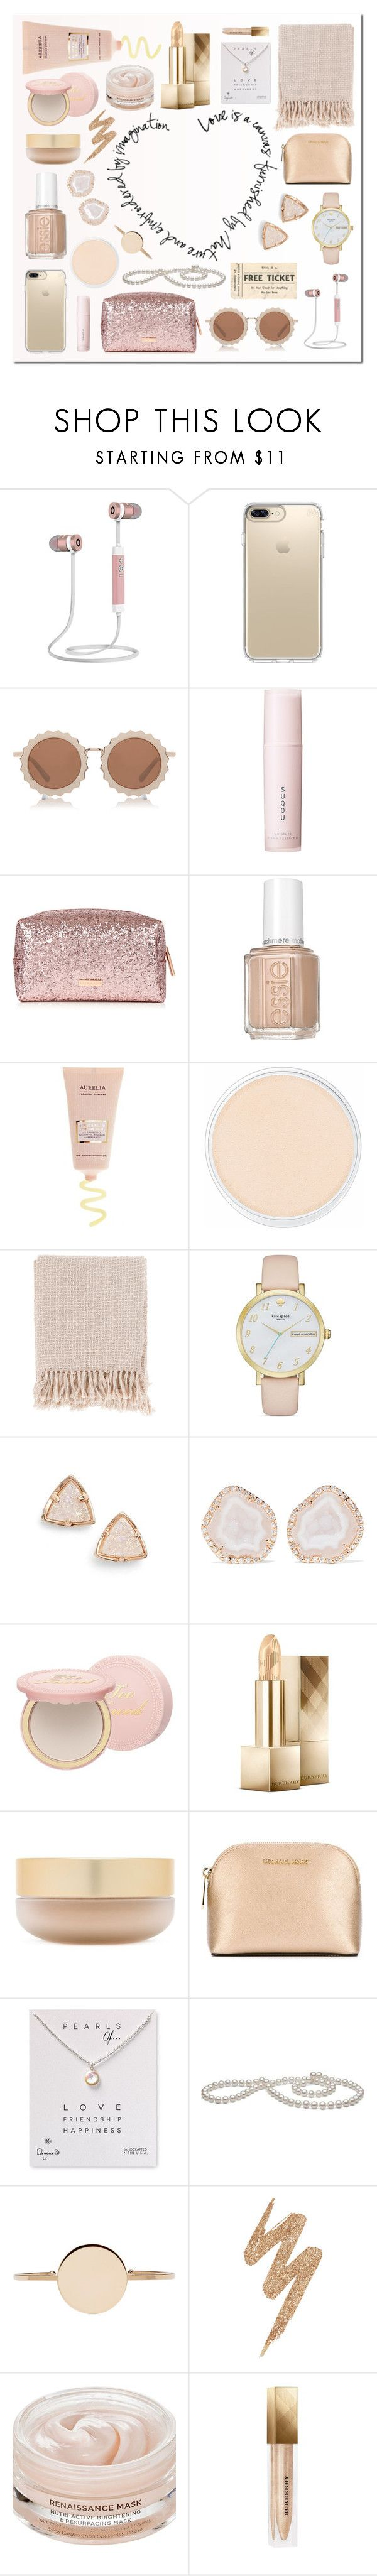 """neutral stocking"" by milimacculloch ❤ liked on Polyvore featuring Speck, House of Holland, SUQQU, Essie, Clinique, Surya, Kate Spade, Kendra Scott, Kimberly McDonald and Too Faced Cosmetics"